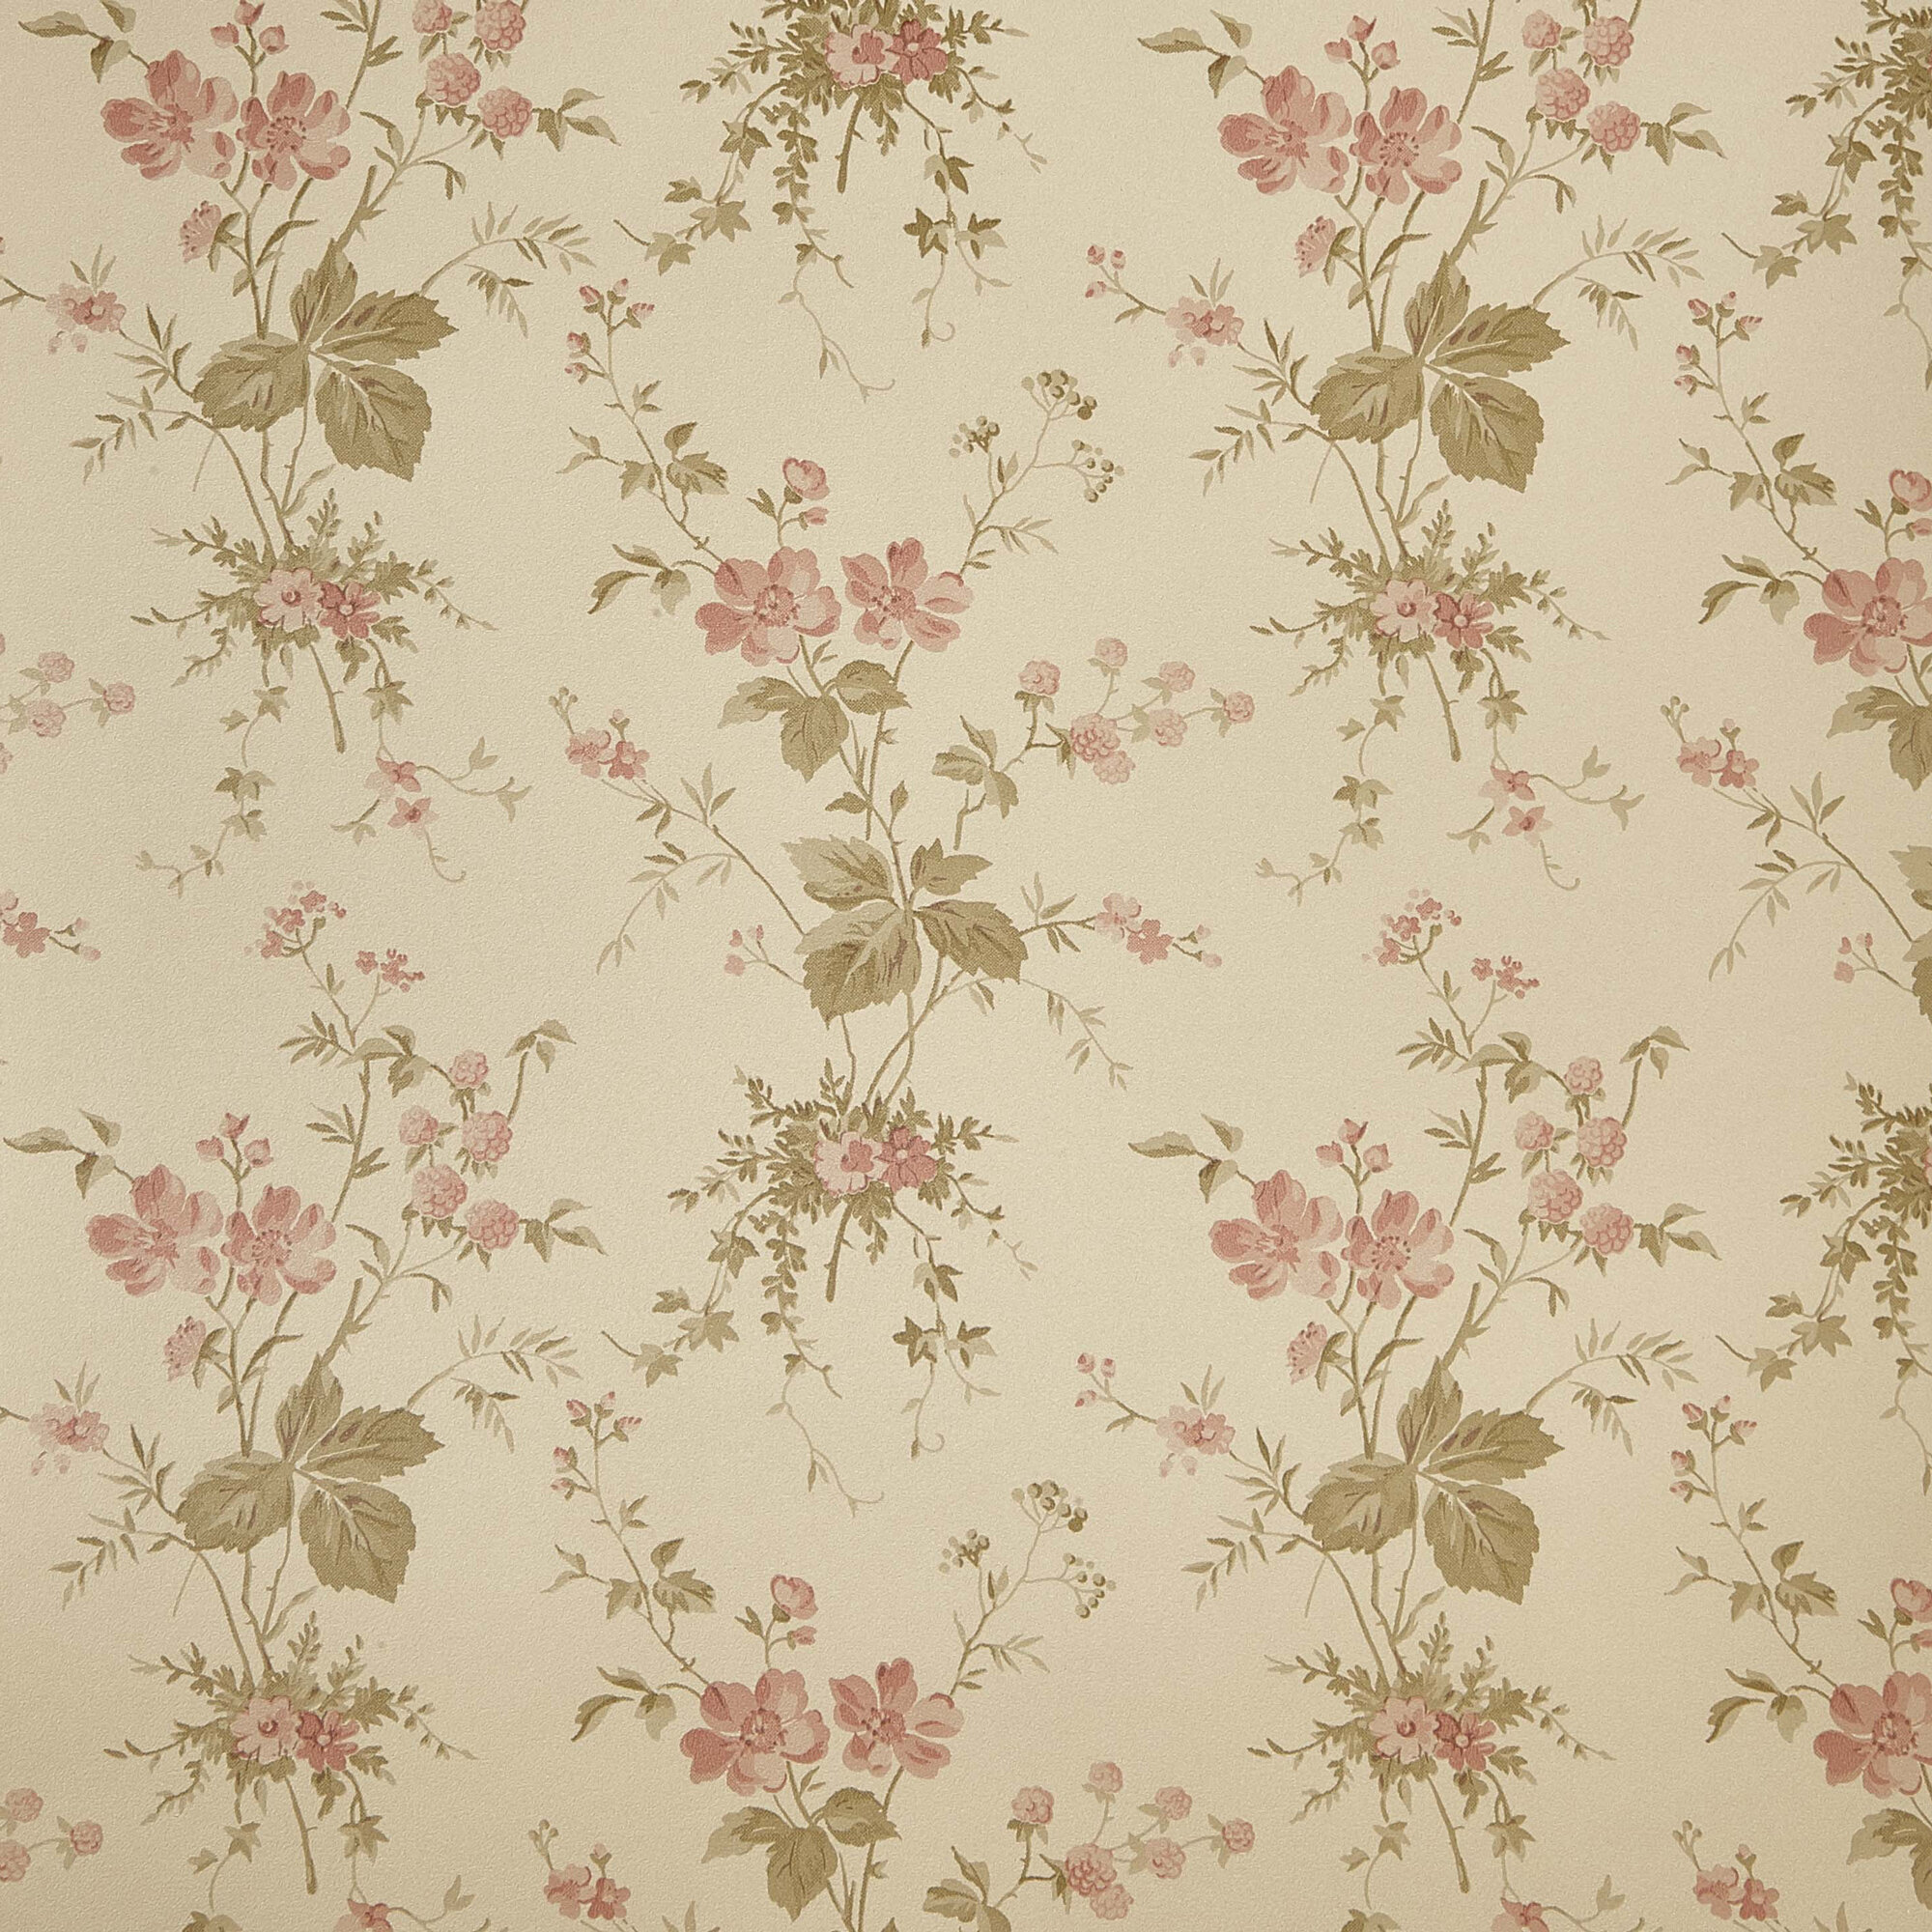 Ophelia Co Kaleigh Floral 32 8 L X 20 8 W Wallpaper Roll